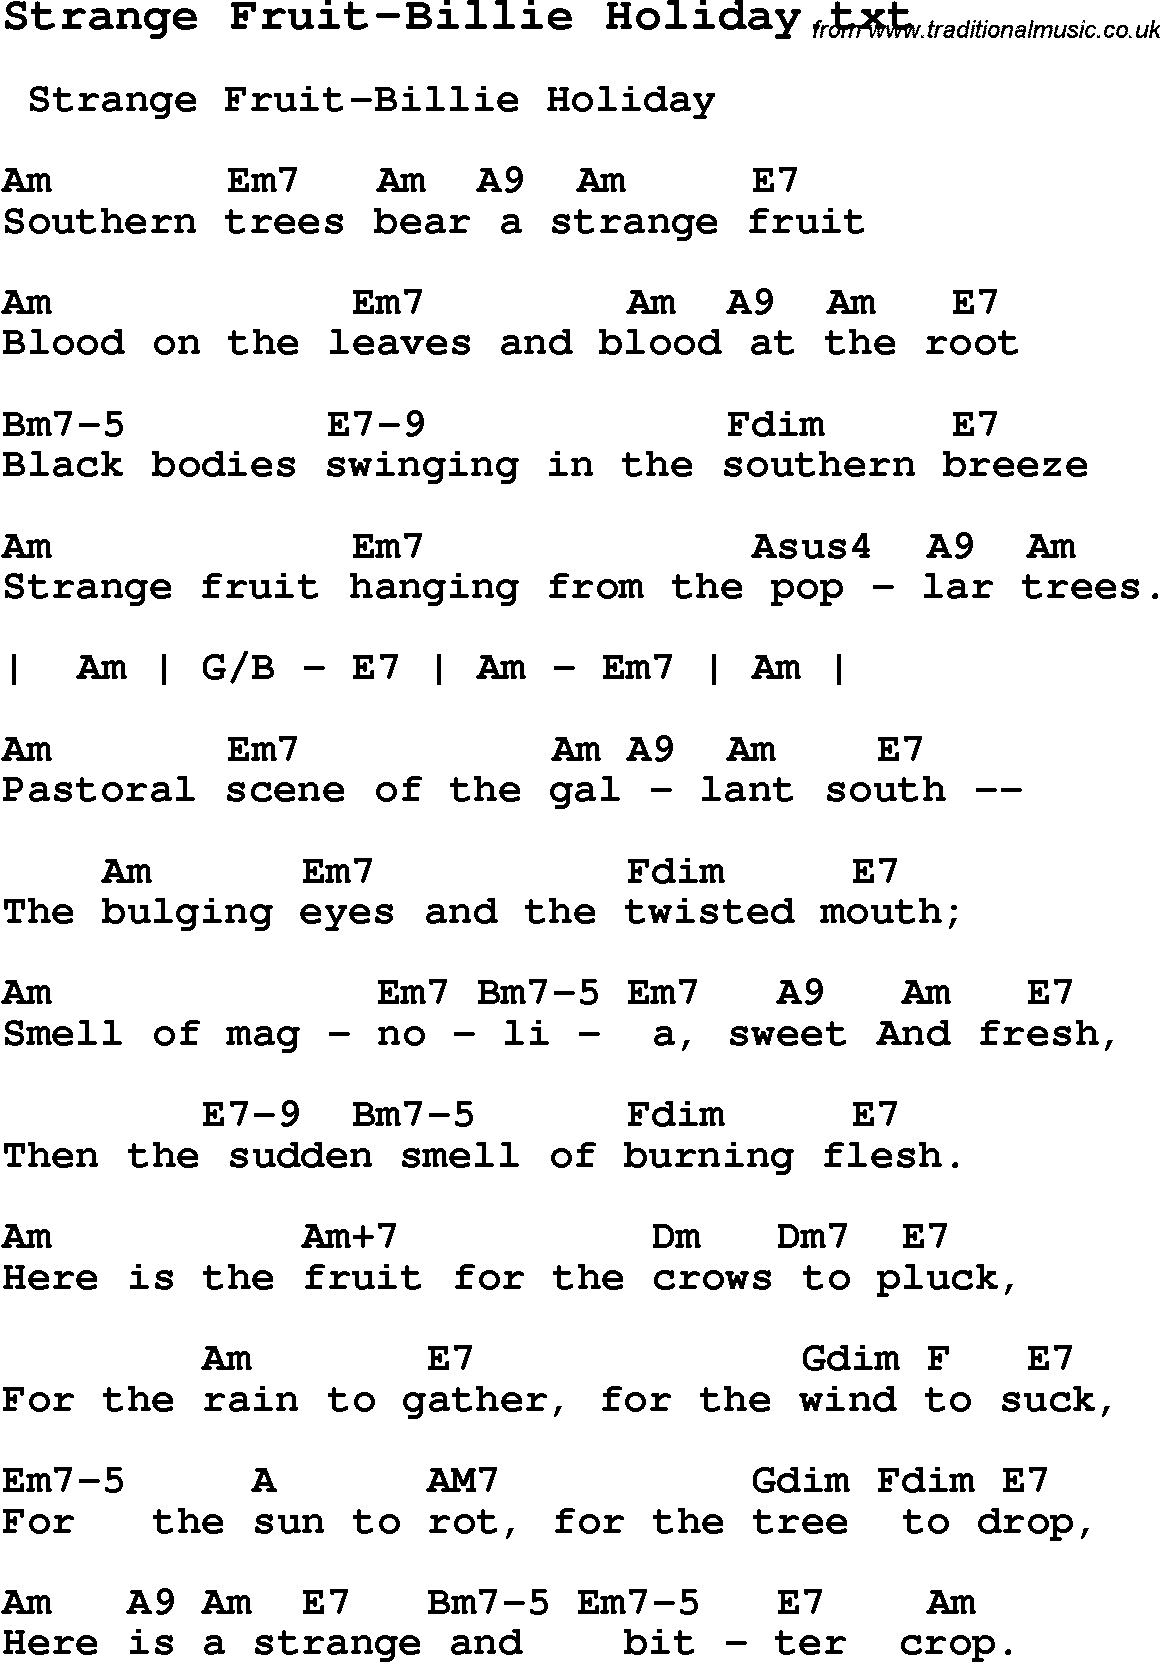 Jazz song strange fruit billie holiday with chords tabs and jazz song from top bands and vocal artists with chords tabs and lyrics strange hexwebz Image collections